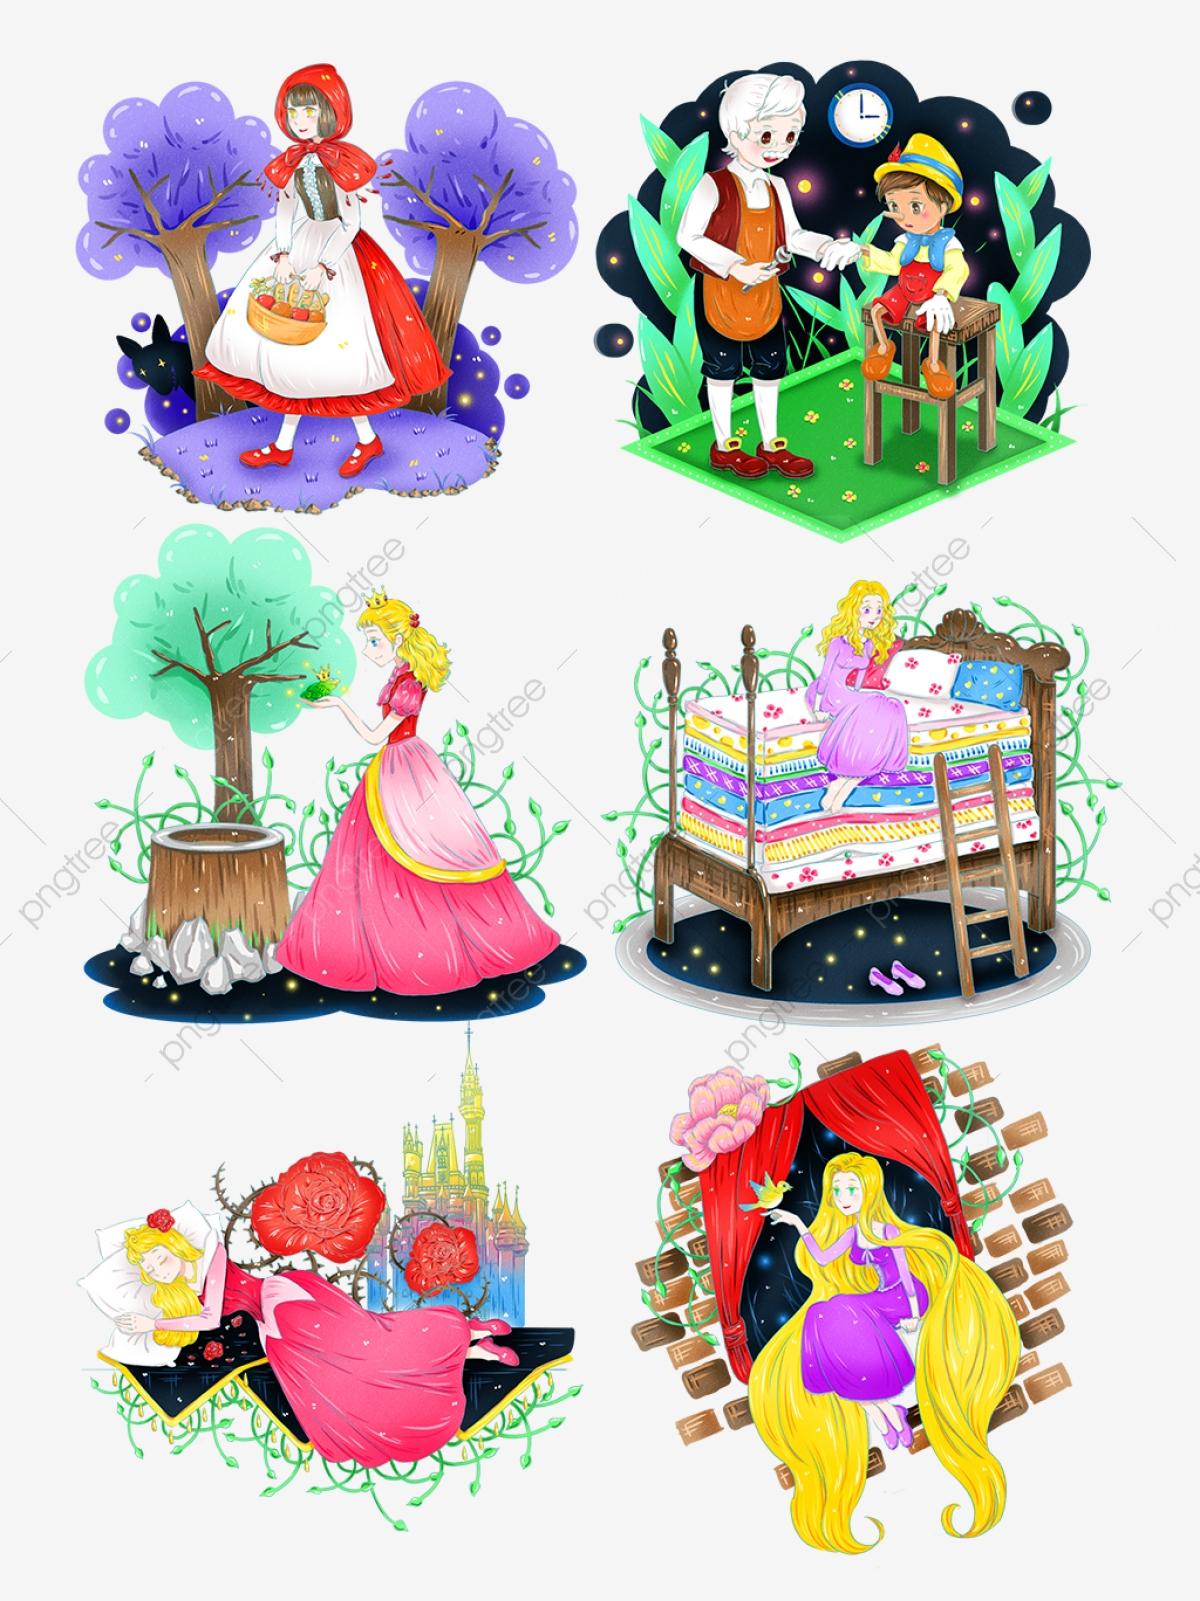 Hand Painted Fairy Tale Cartoon Character Image Can Be